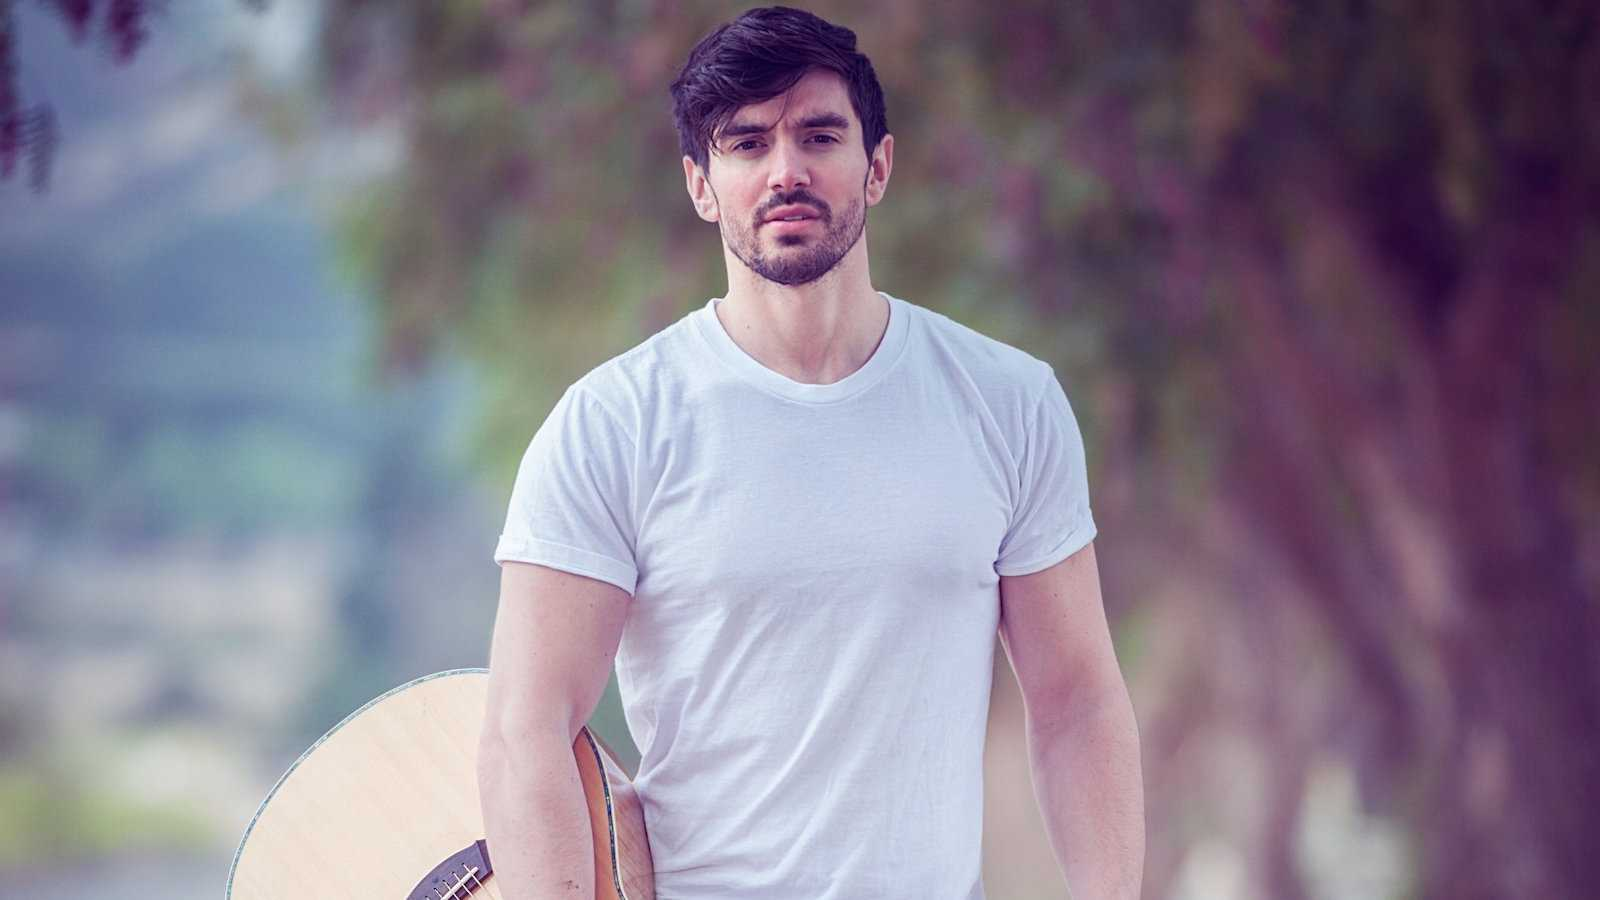 Steve Grand is one of the hottest gay singers and a great example of diversity in country music